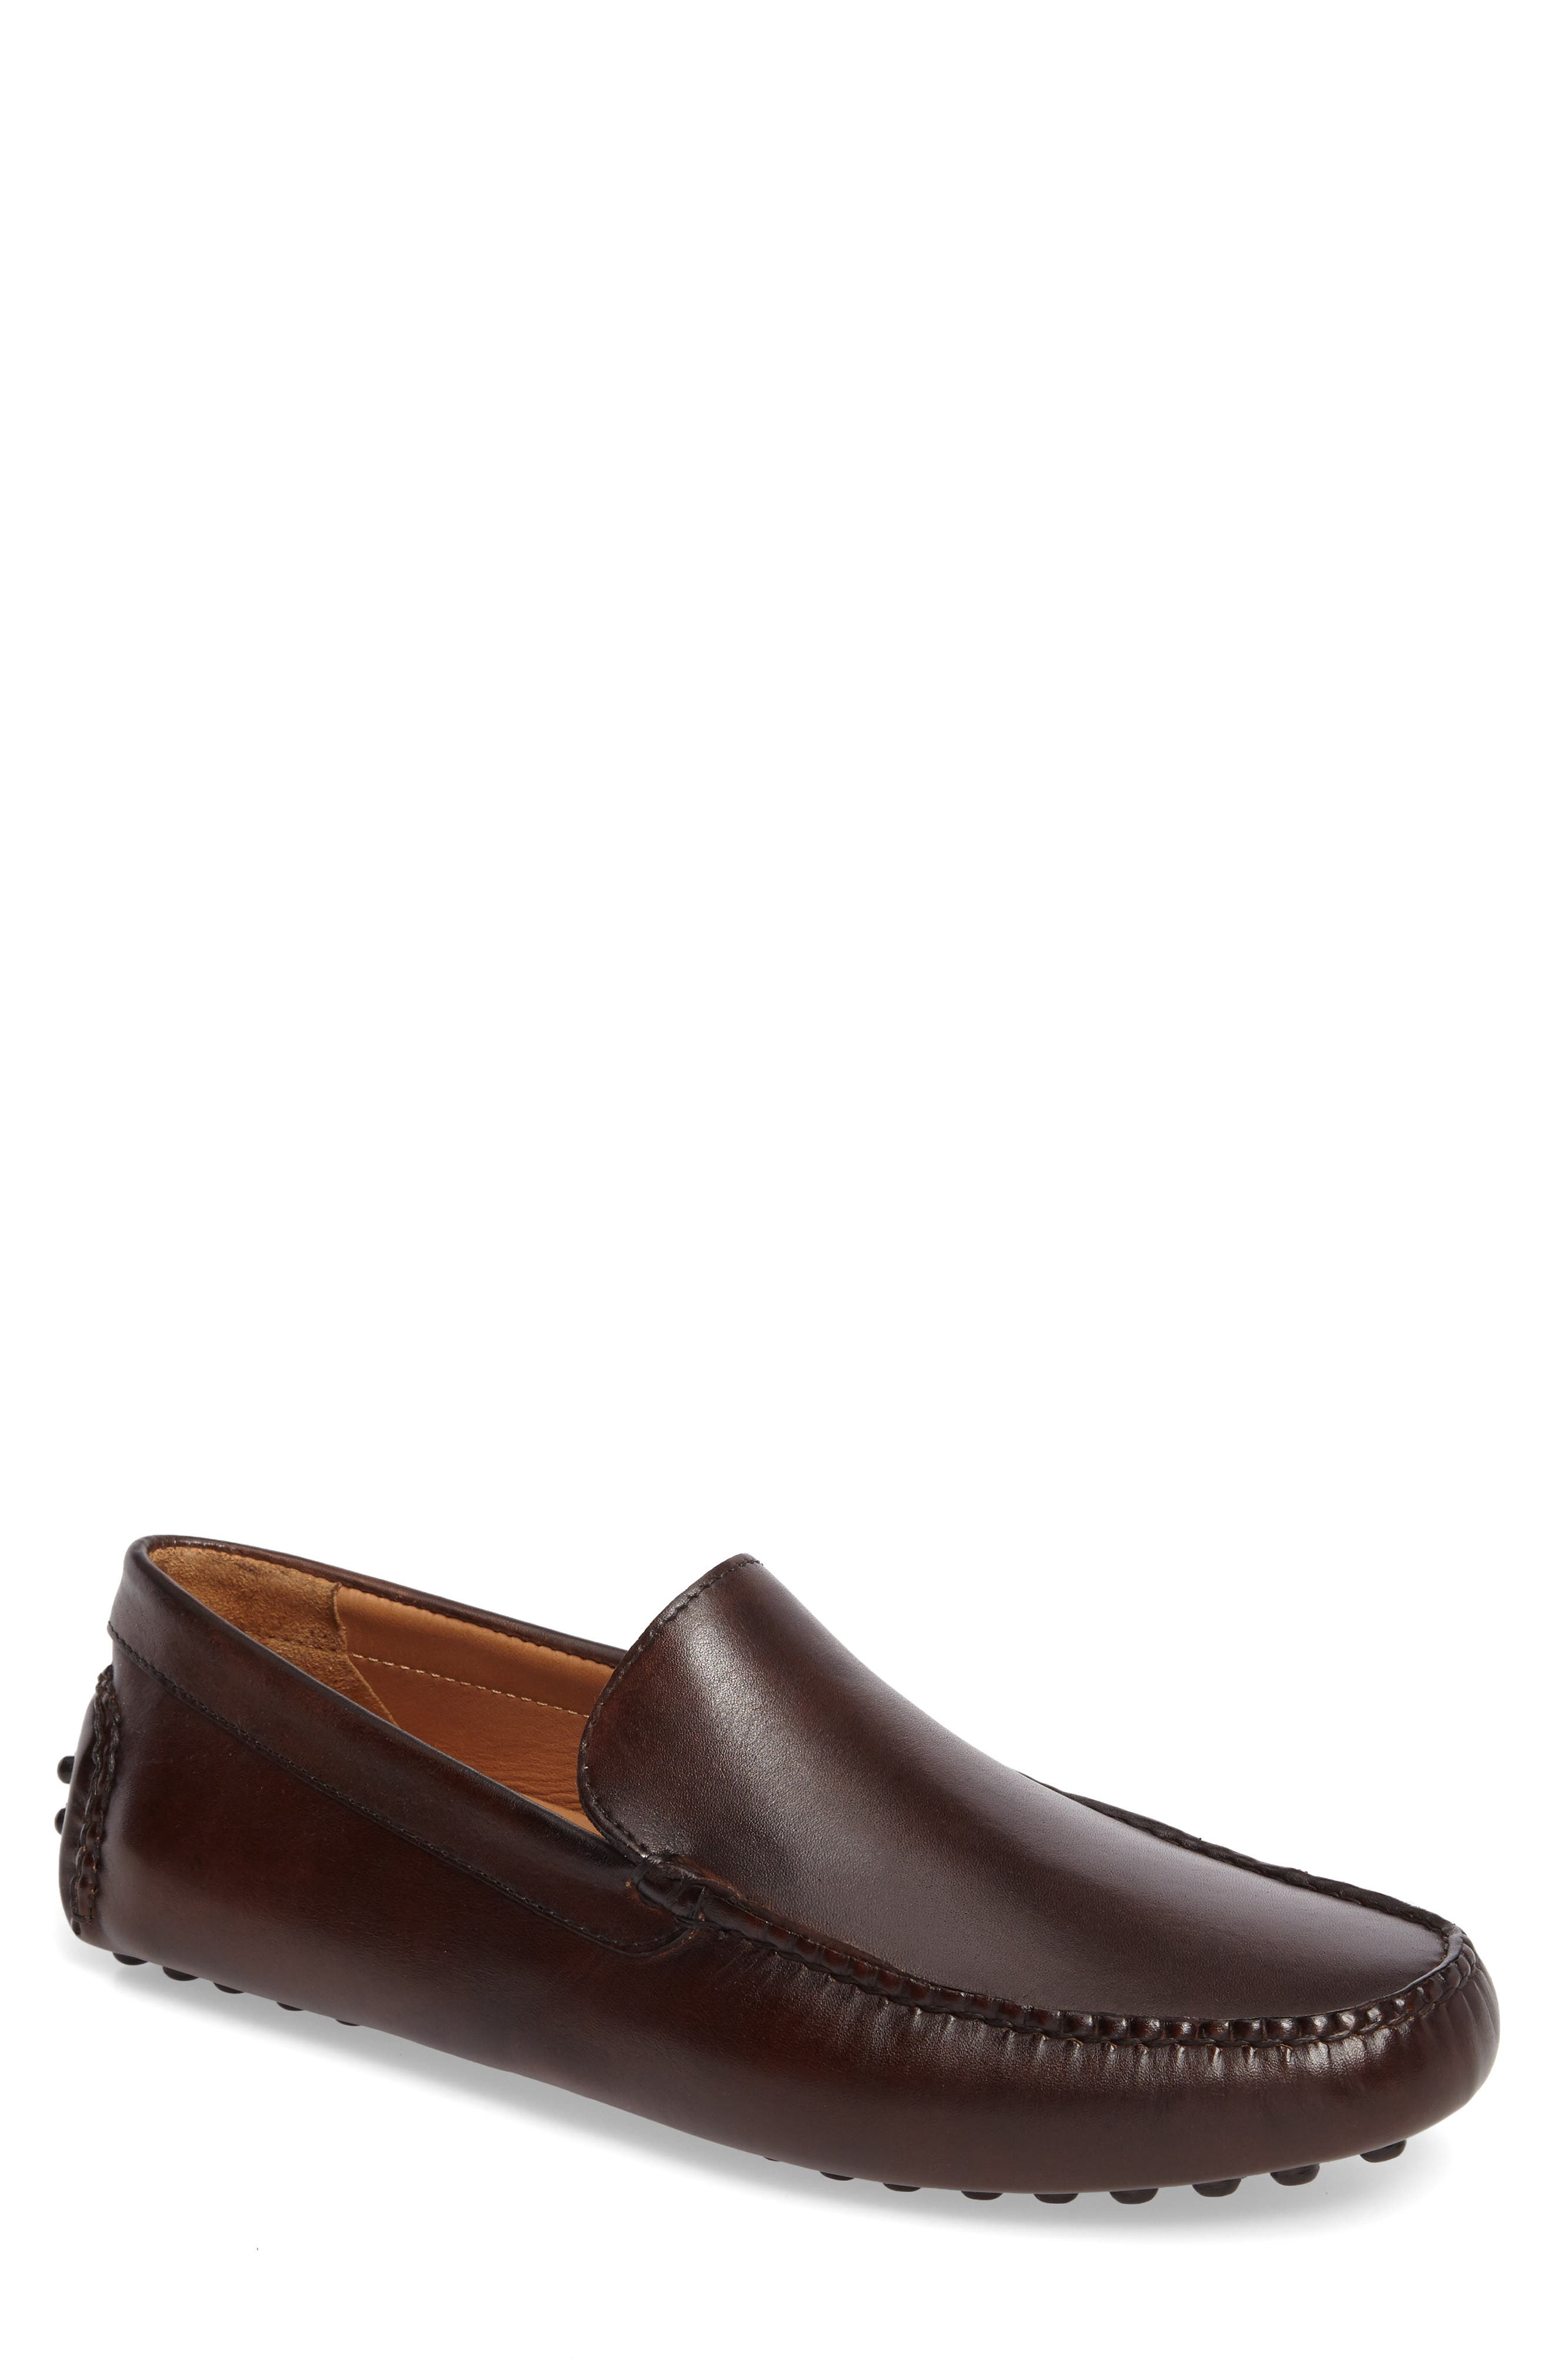 Cane Driving Shoe,                         Main,                         color, Brown Leather